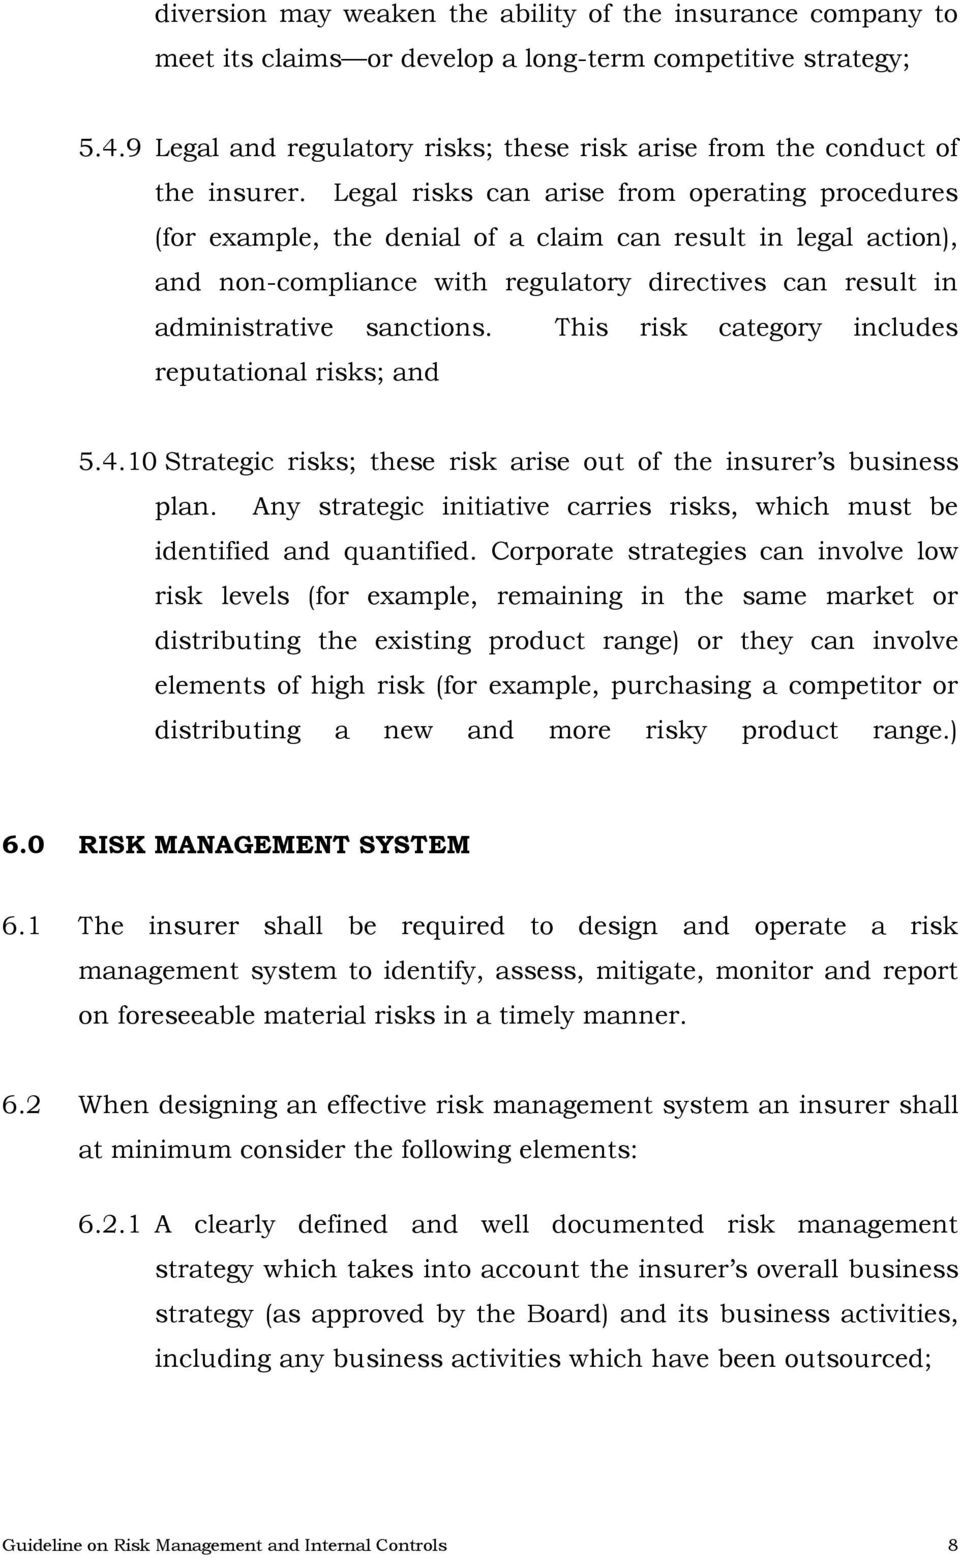 GUIDELINES ON RISK MANAGEMENT AND INTERNAL CONTROLS FOR